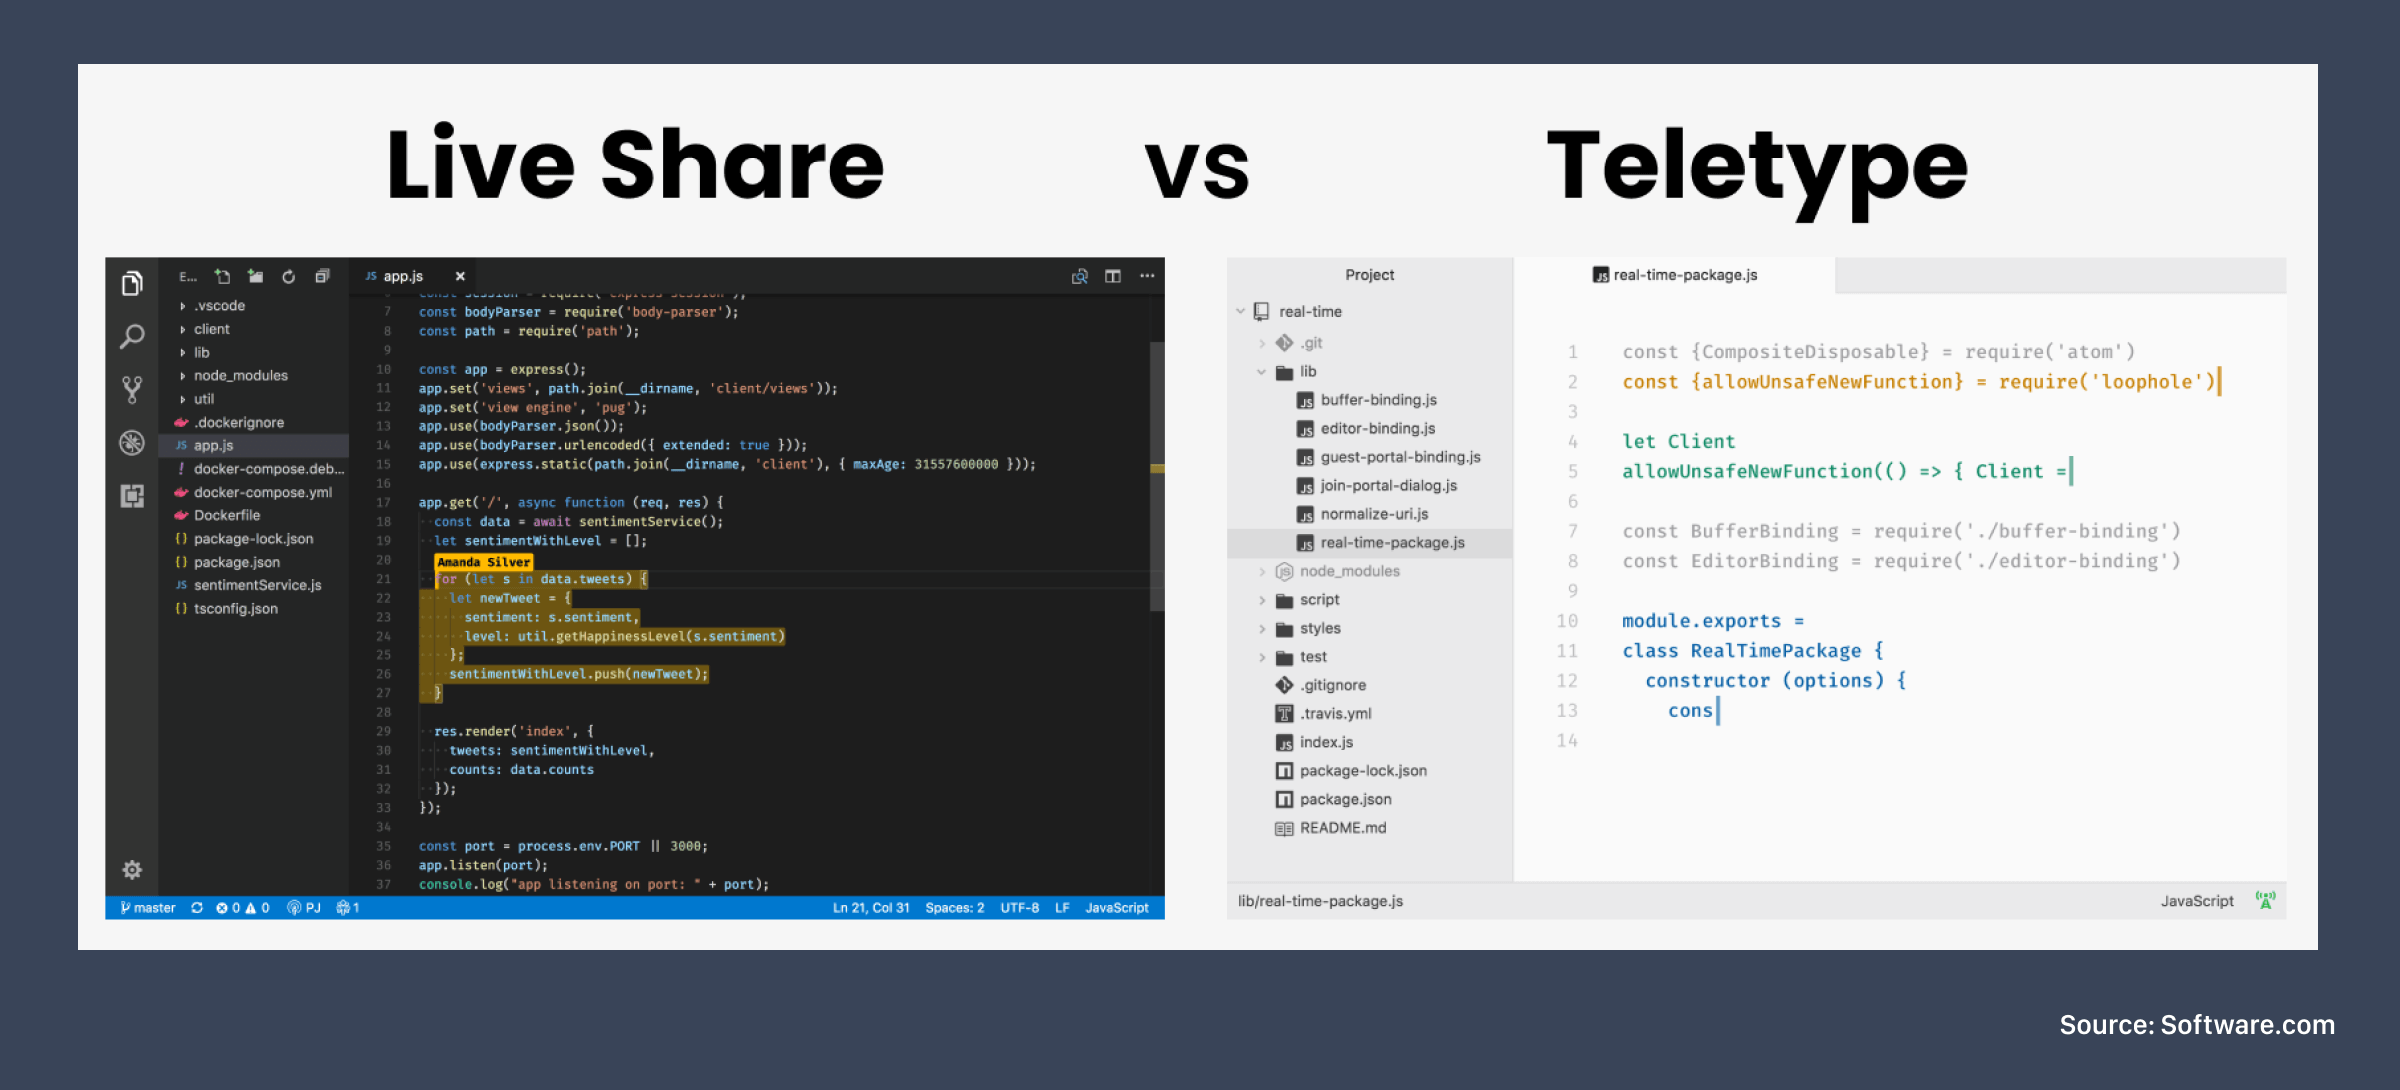 Live Share for Microsoft's VS Code and Visual Studio vs Teletype for GitHub's Atom, both useful for collaborative code editing in your native text editor and IDE